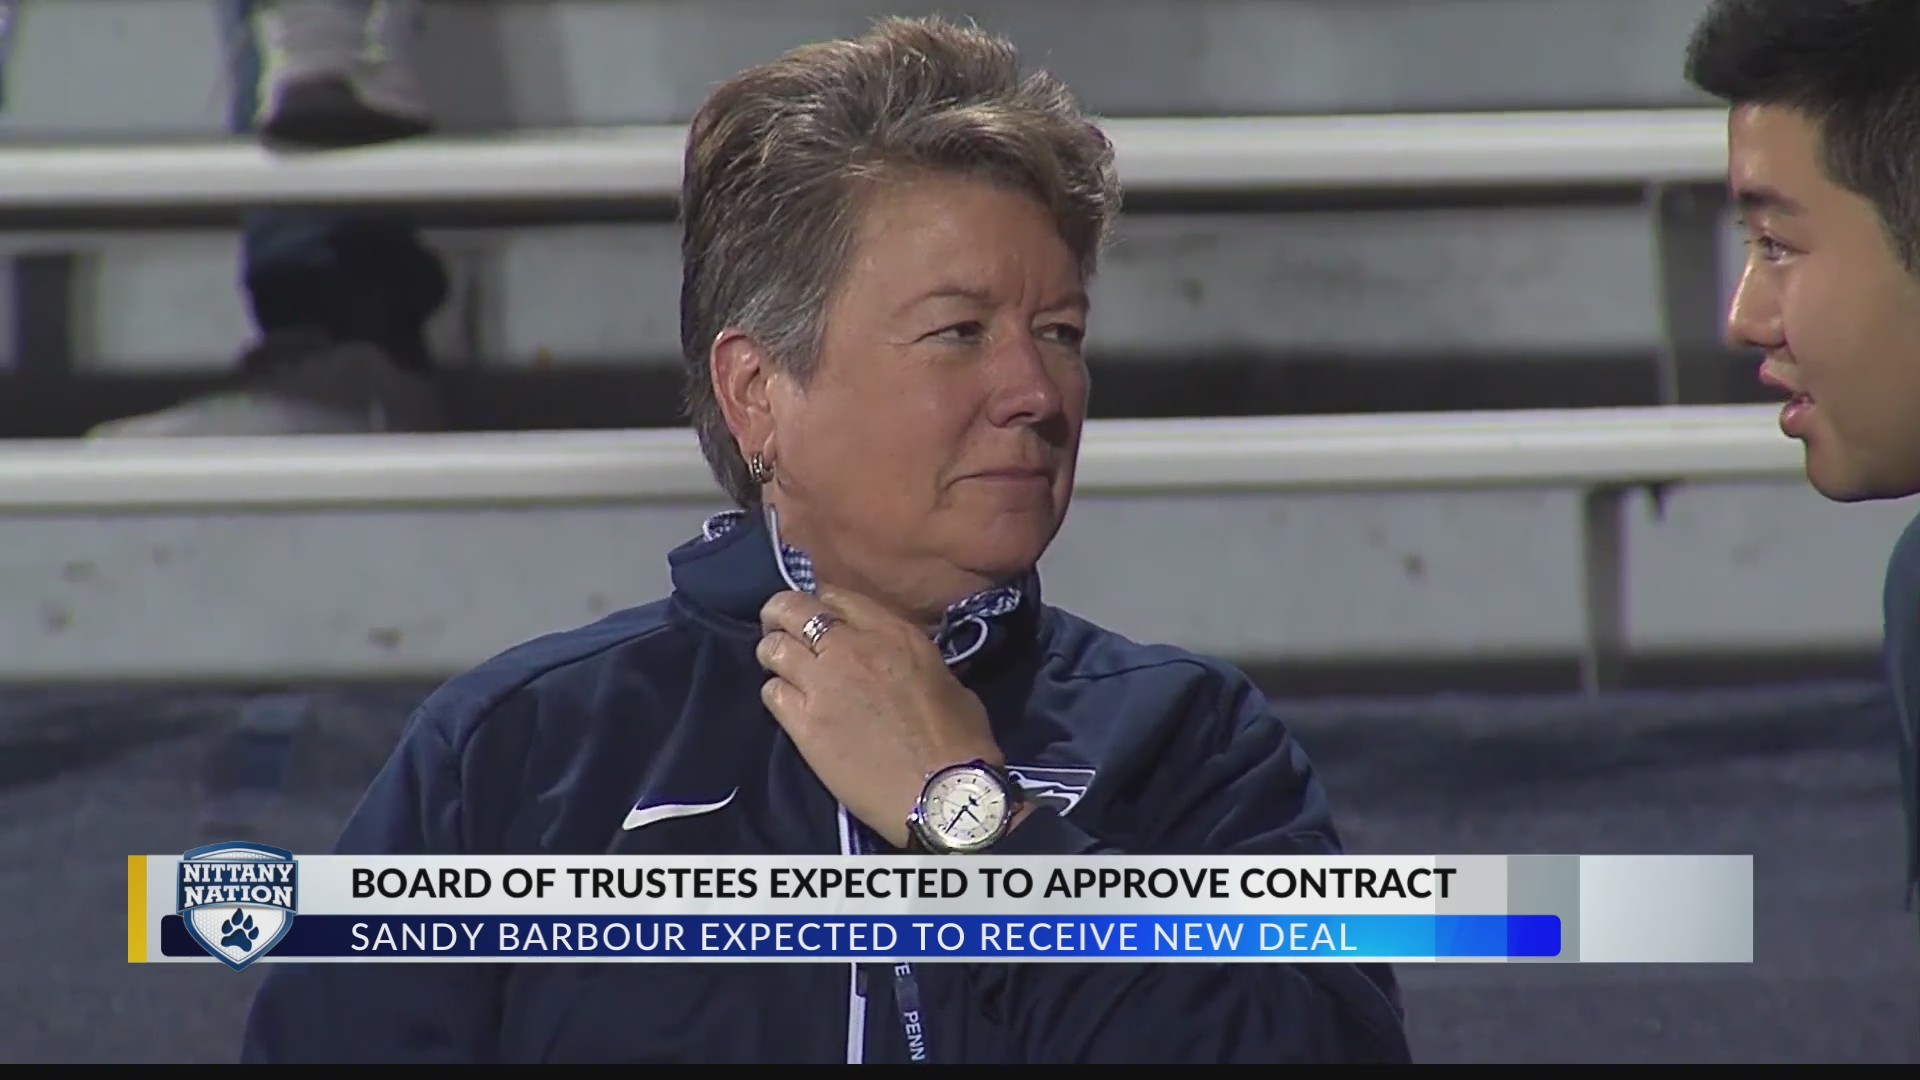 Sandy_Barbour_s_Contract_Expected_to_be__0_20190222044043